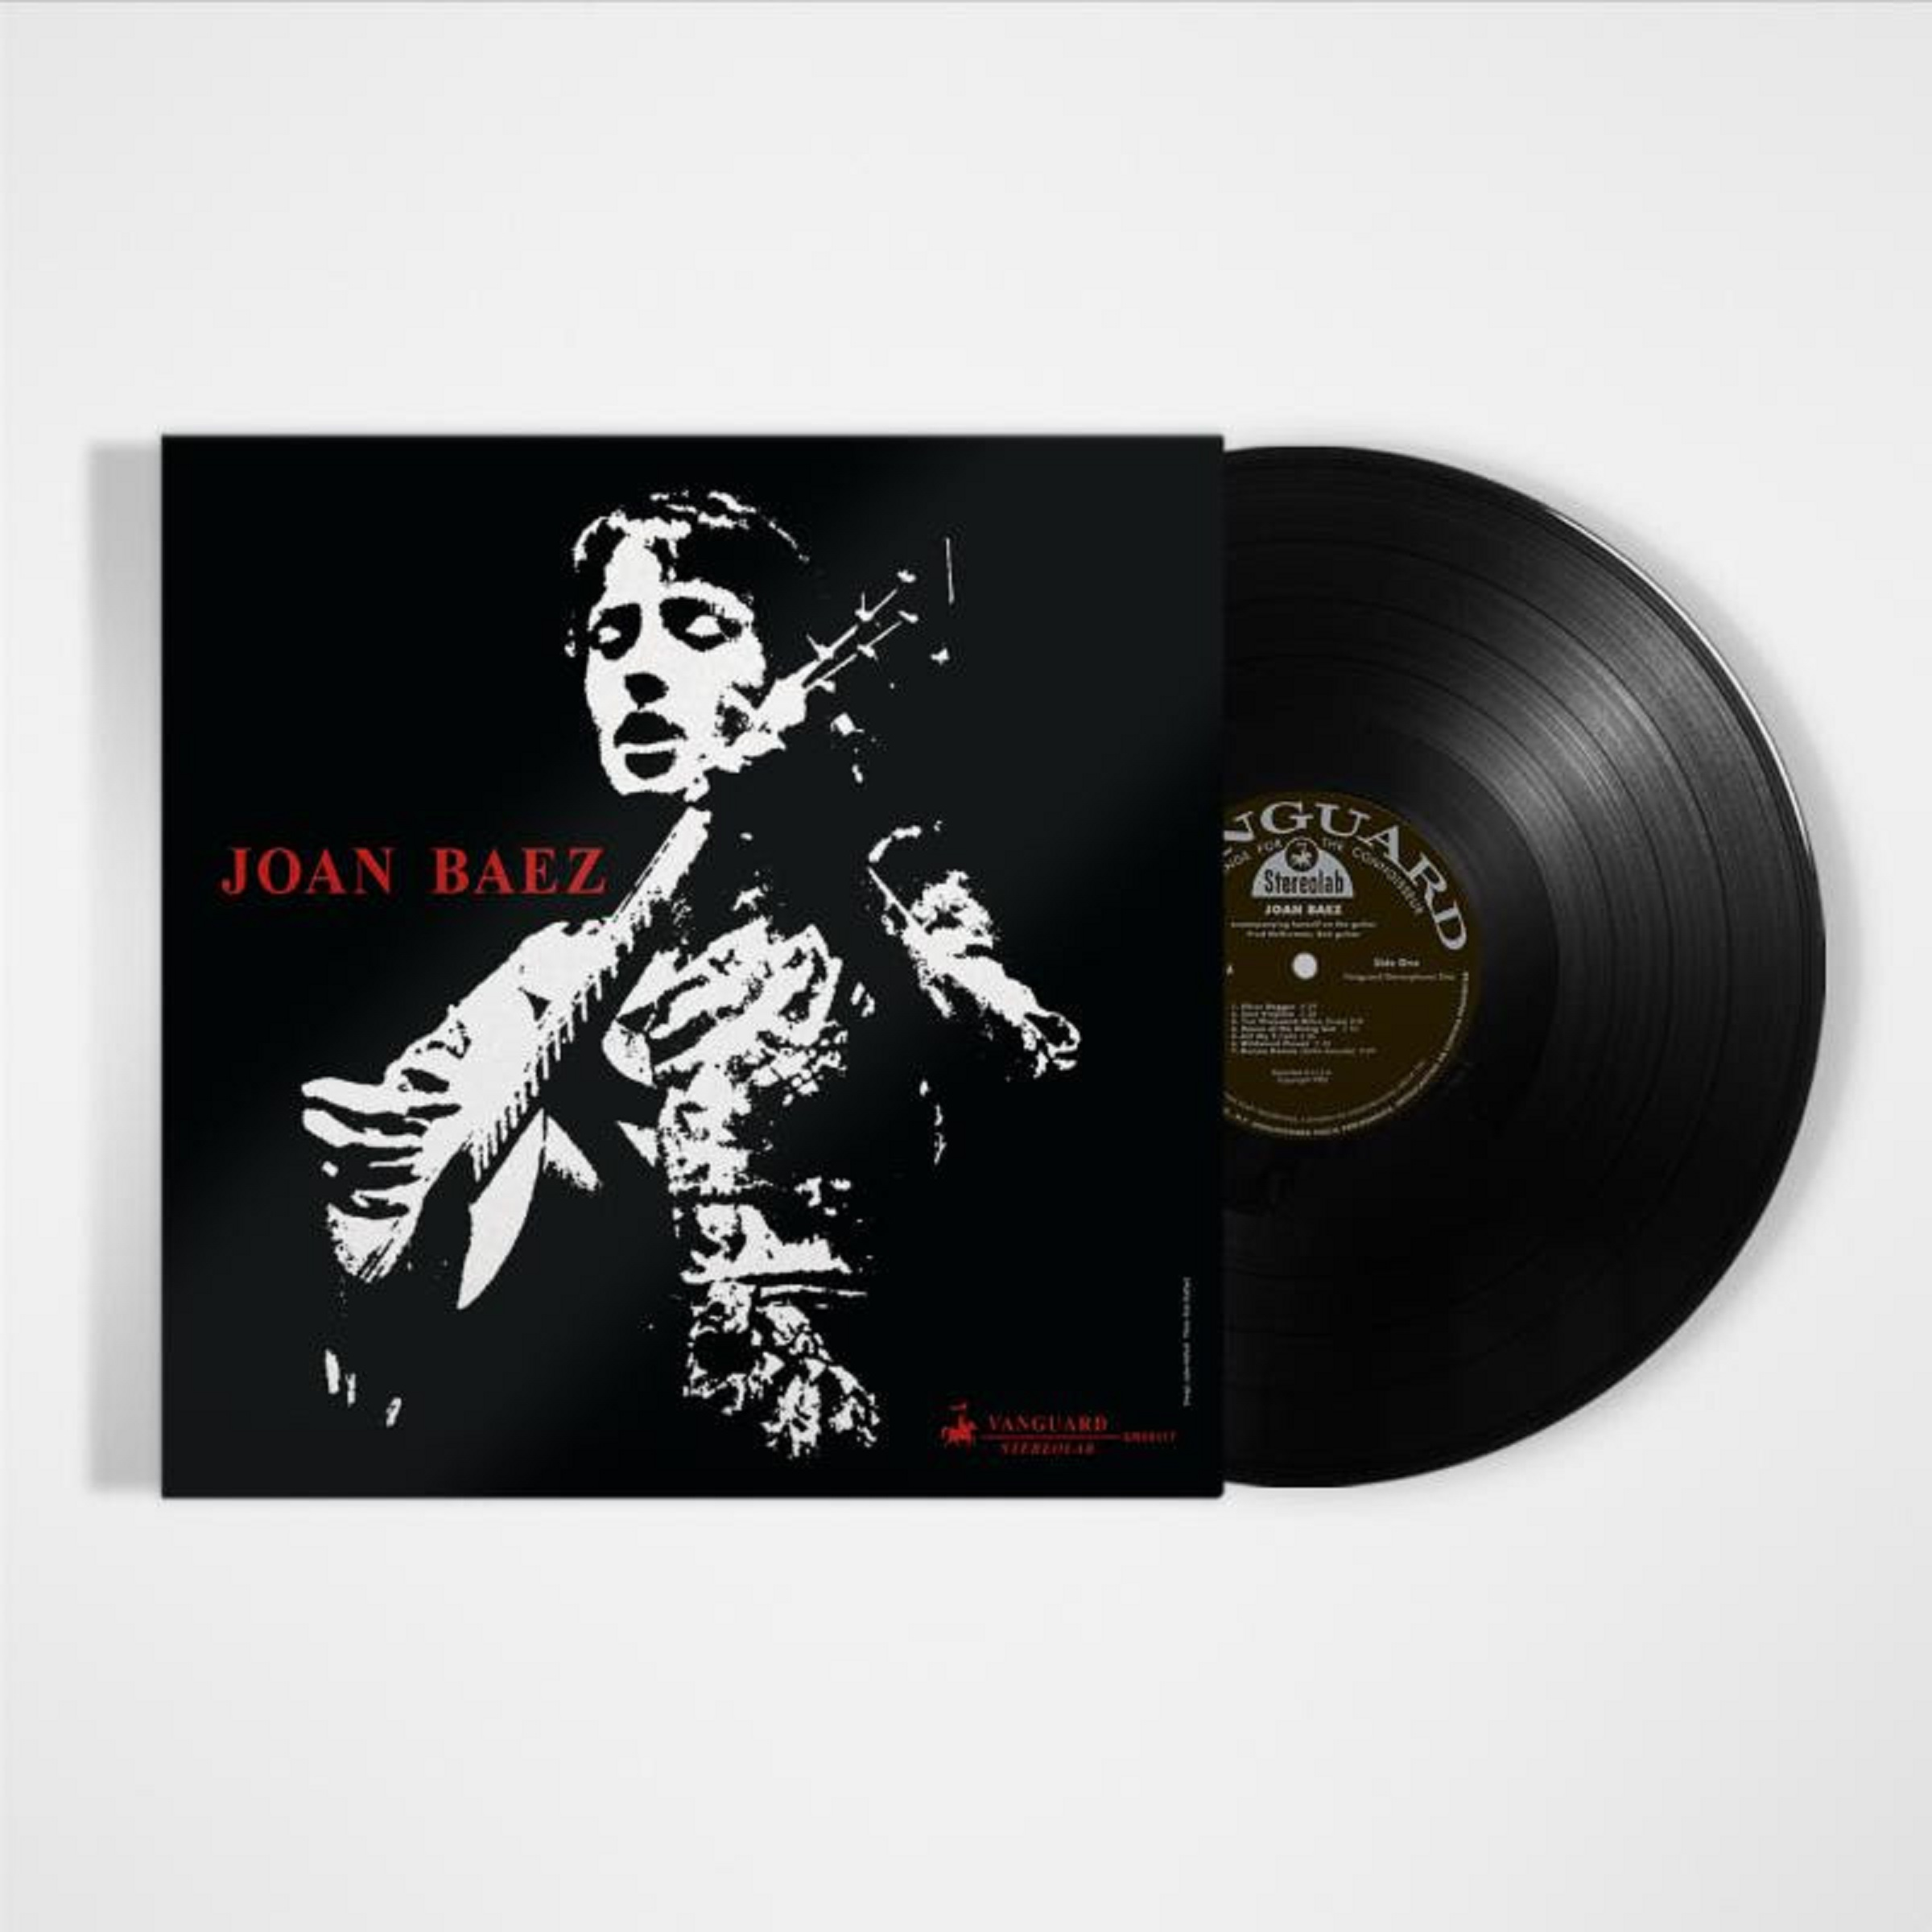 Joan Baez re-issues self-titled Debut Album